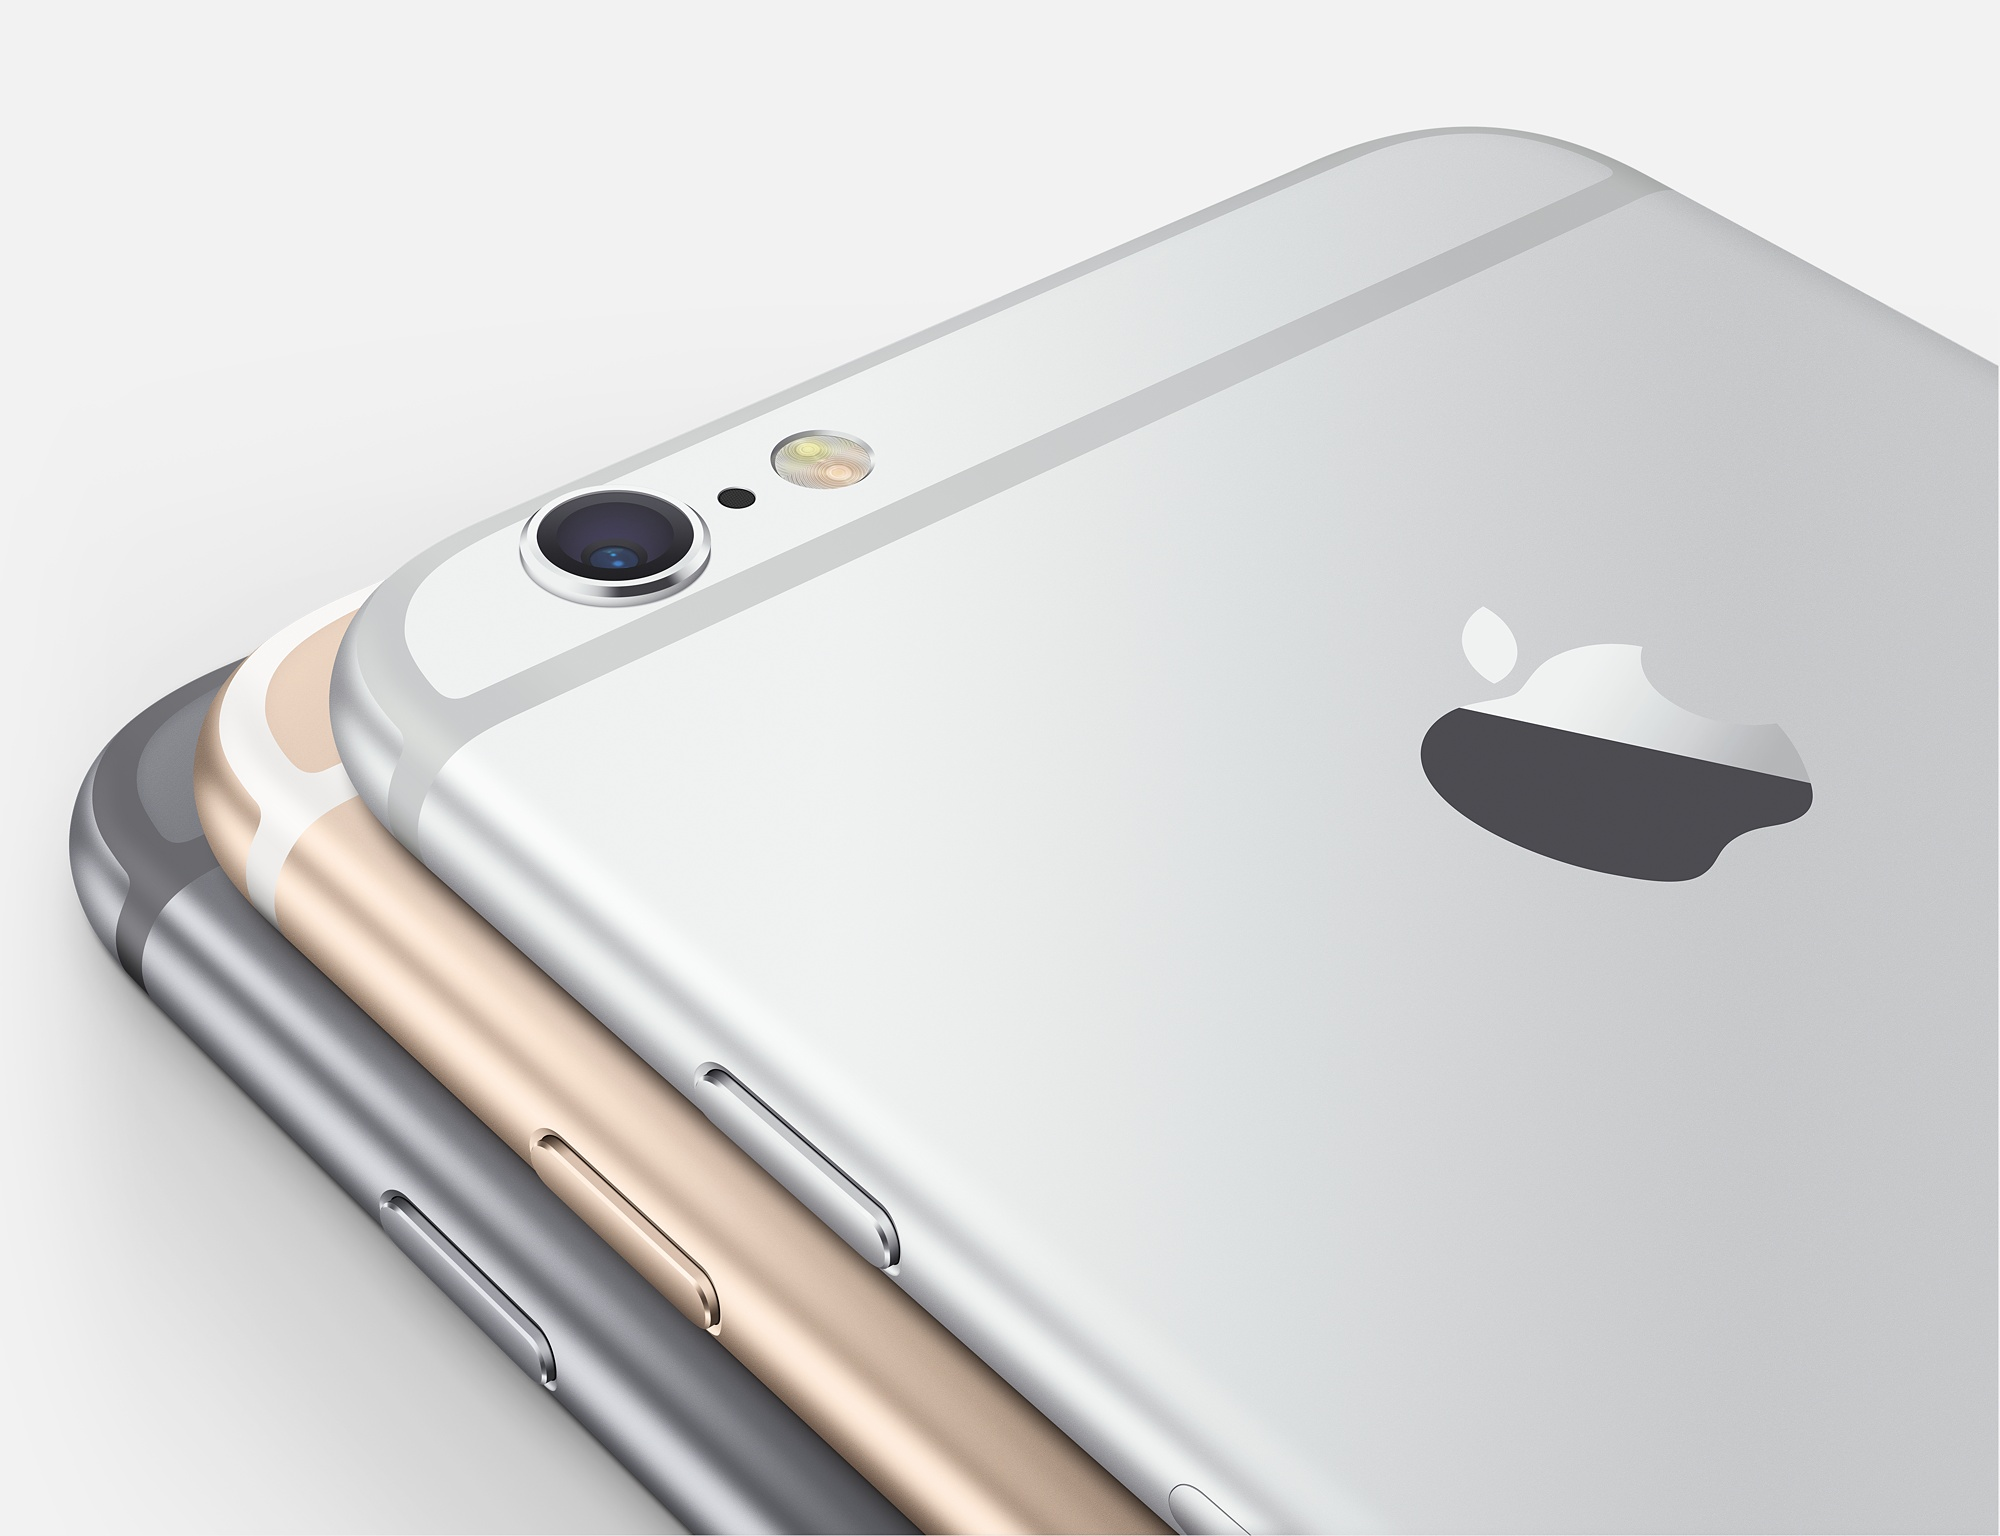 iPhone 6 Plus Sells Out as Apple Takes Record Preorders [u]